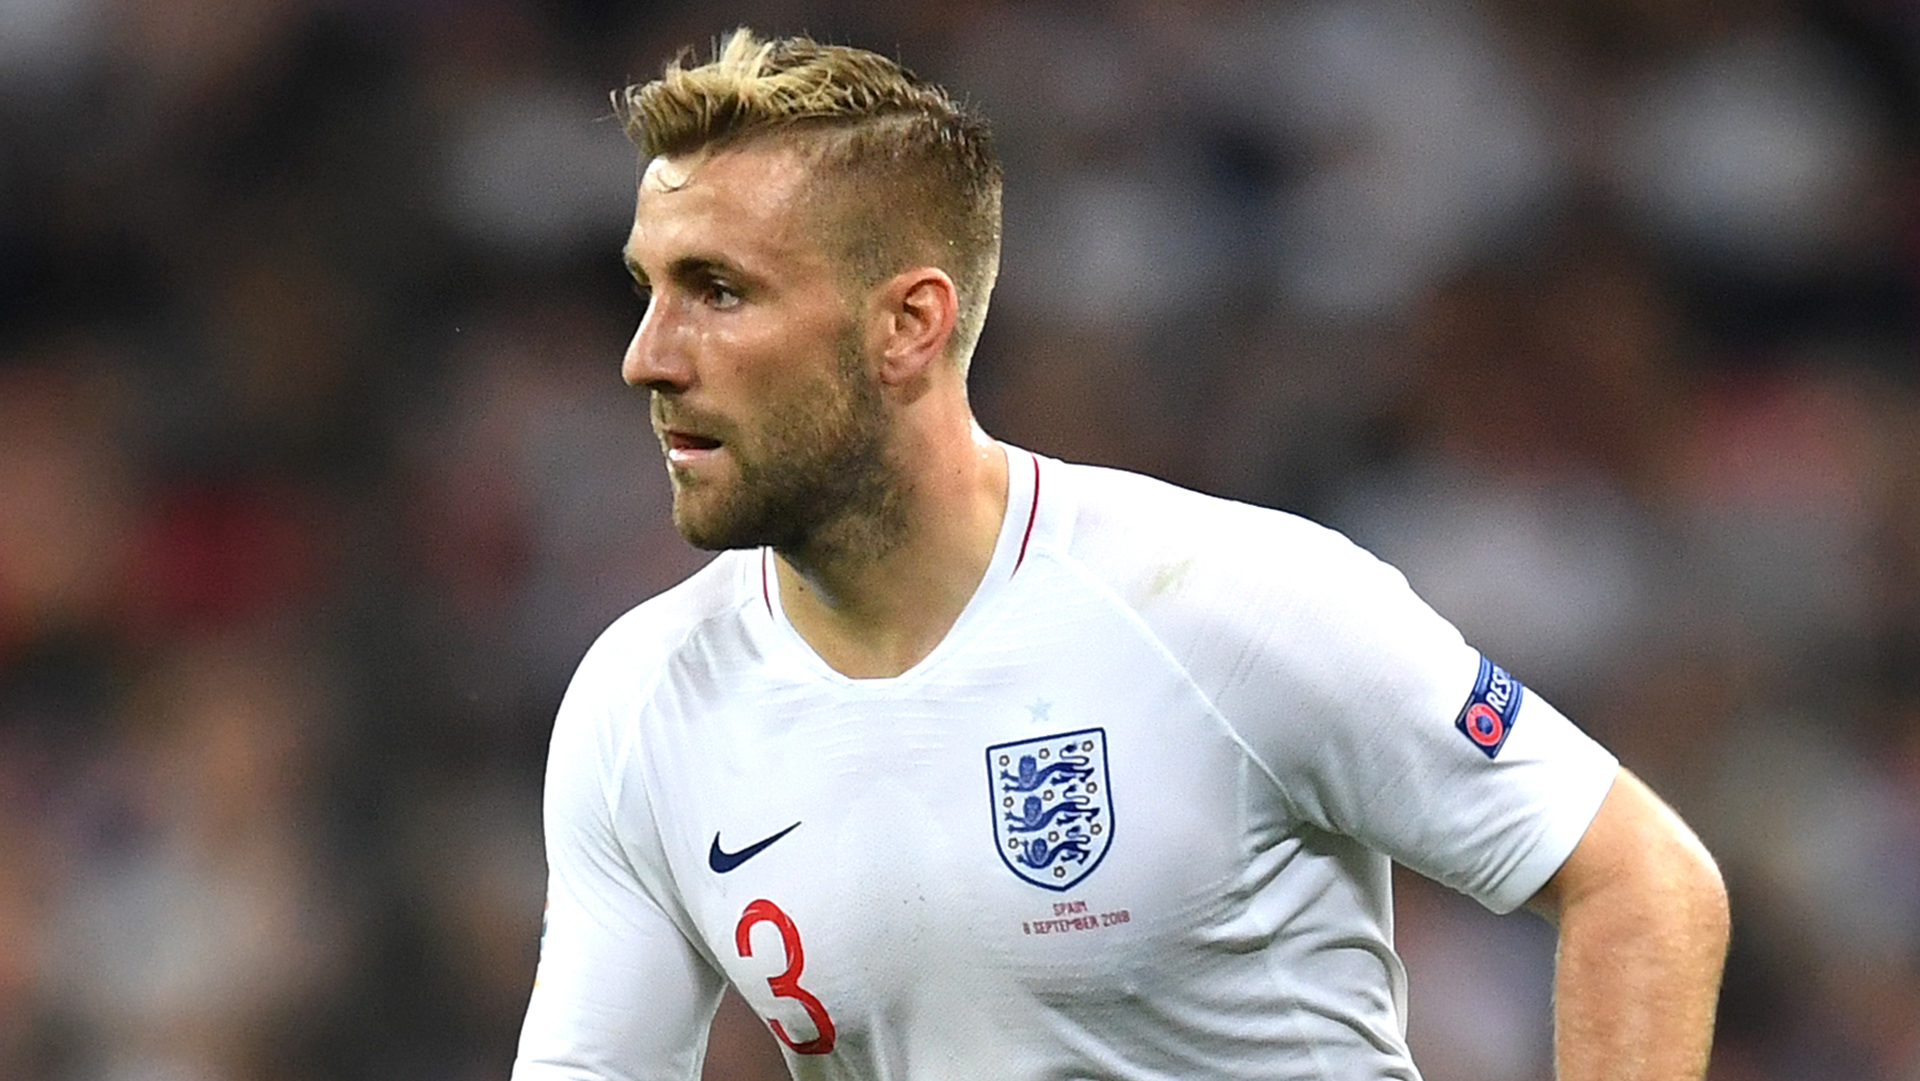 England's squad for UEFA Nations League finals has been announced